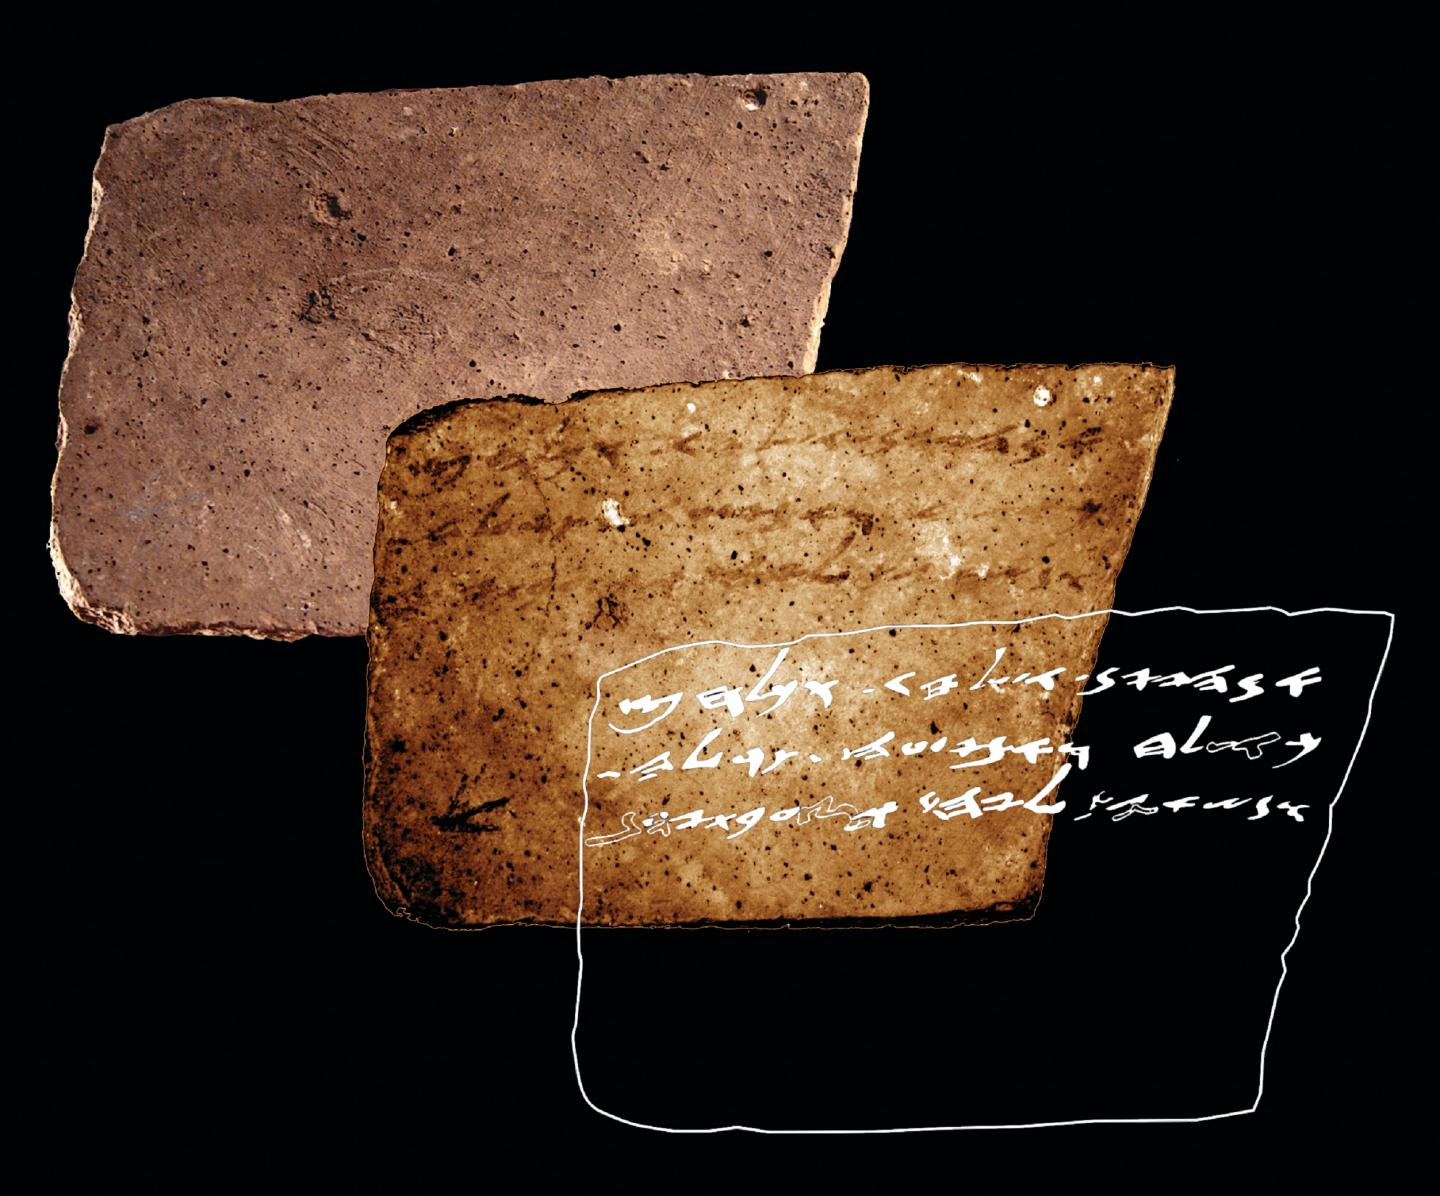 History News of the Week: A Discovery to Rewrite the Story of Mankind?